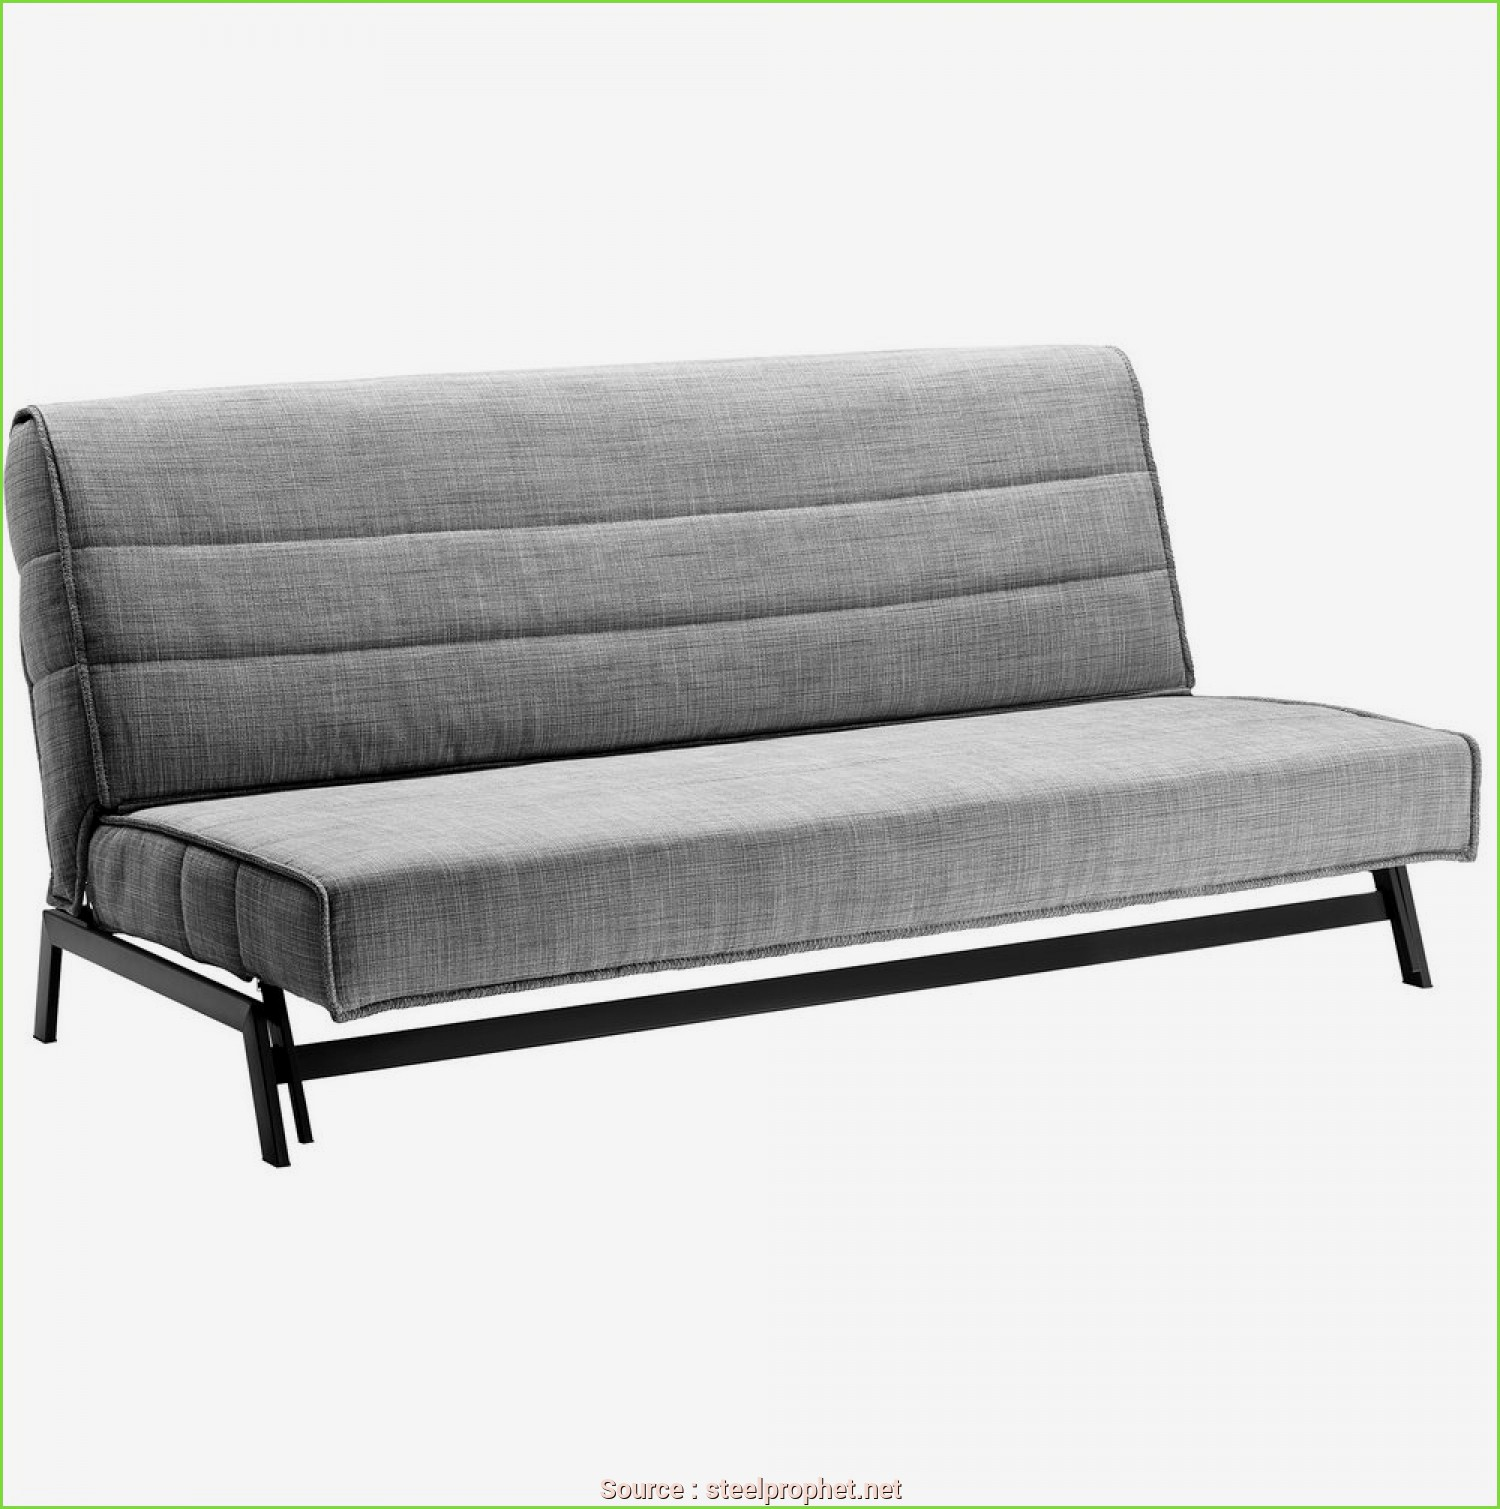 Futon Ikea Foto, Amabile Futon Ikea Beau Collection Sofas Ikea Couch, With Cool Style To Match Your Space